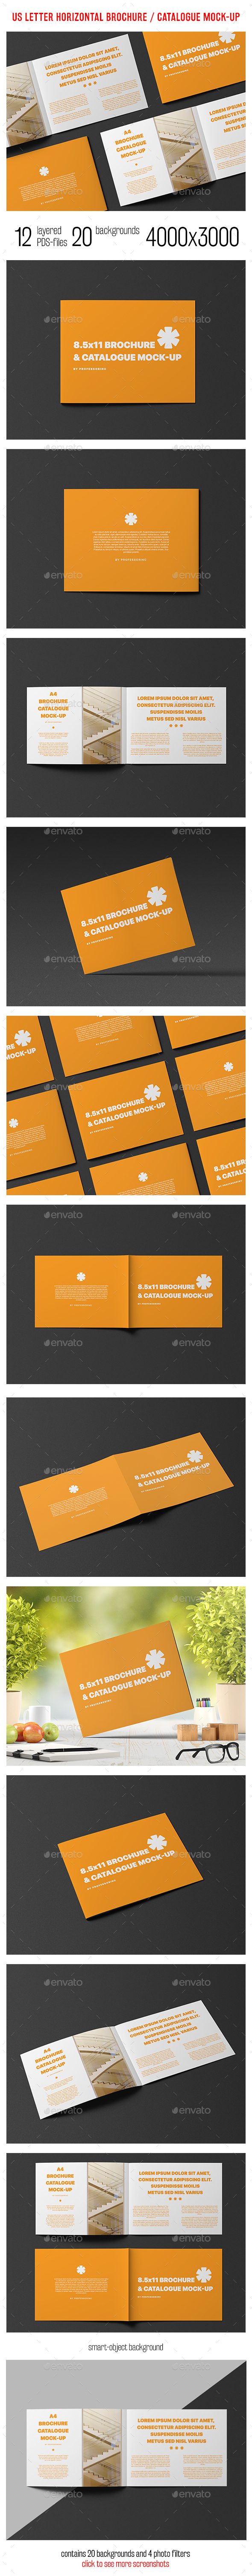 US Letter Horizontal Catalogue / Brochure Mock-Up - Brochures Print